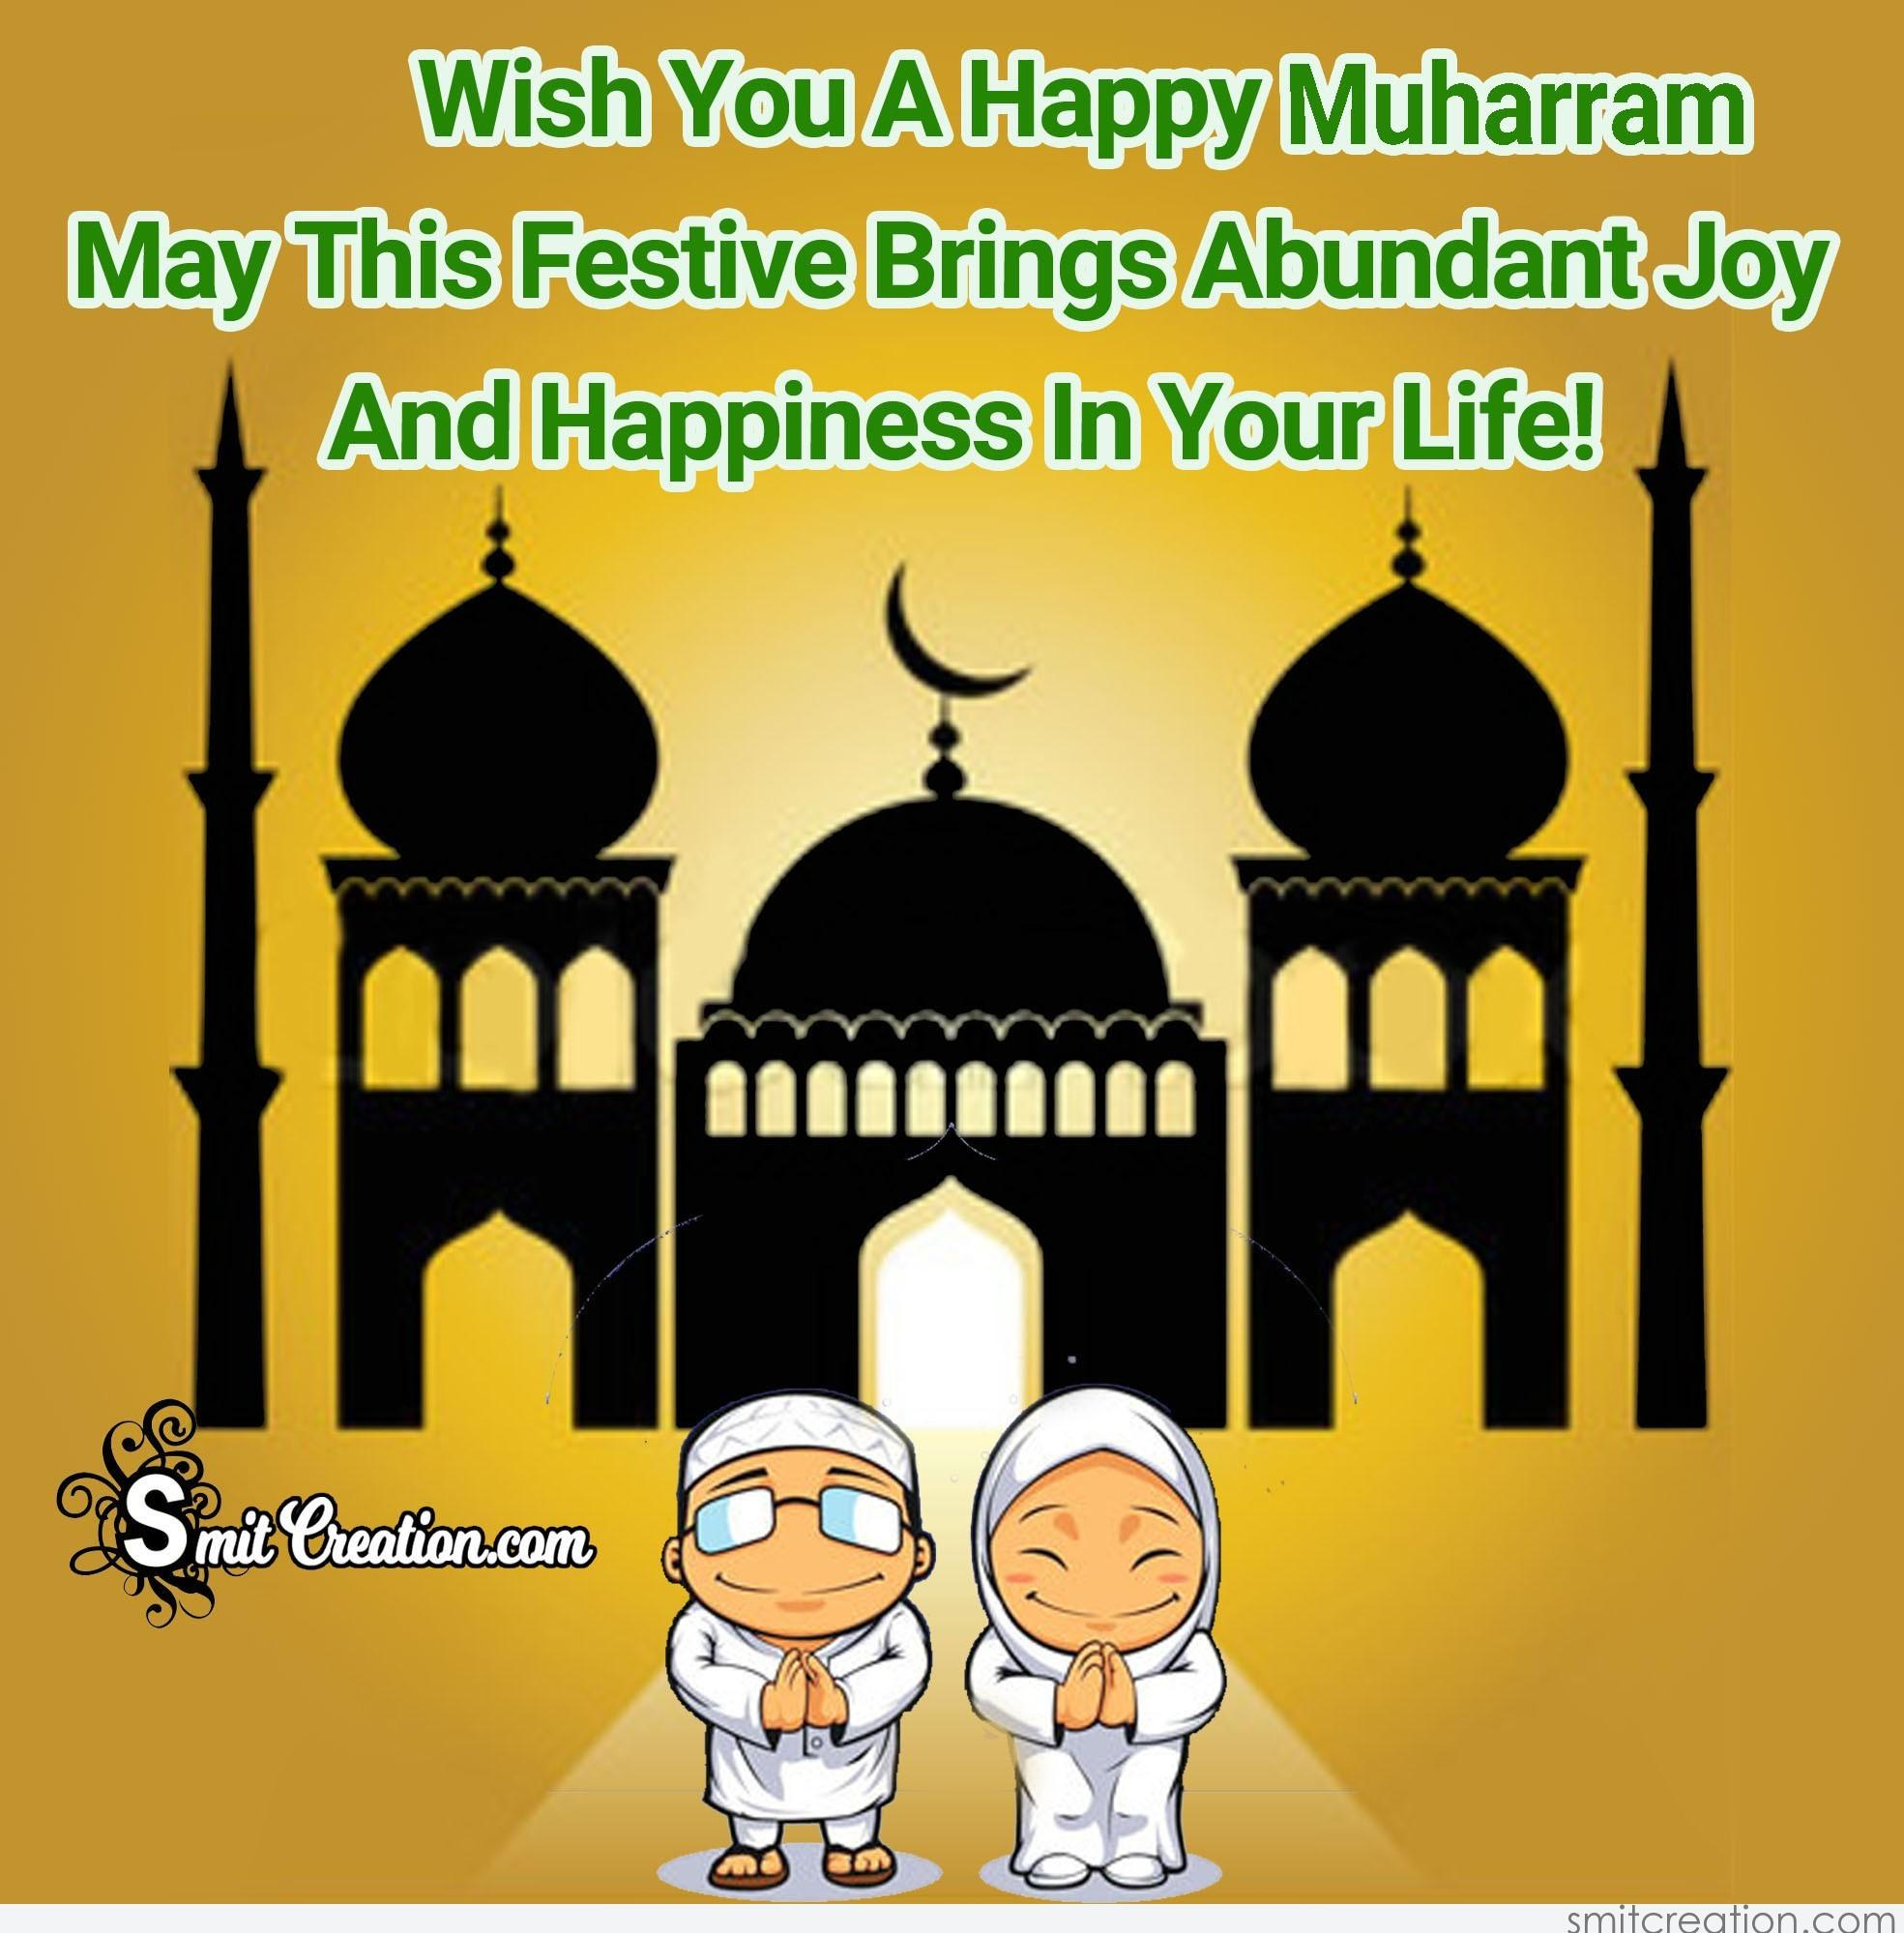 Wish You A Happy Muharram Smitcreation